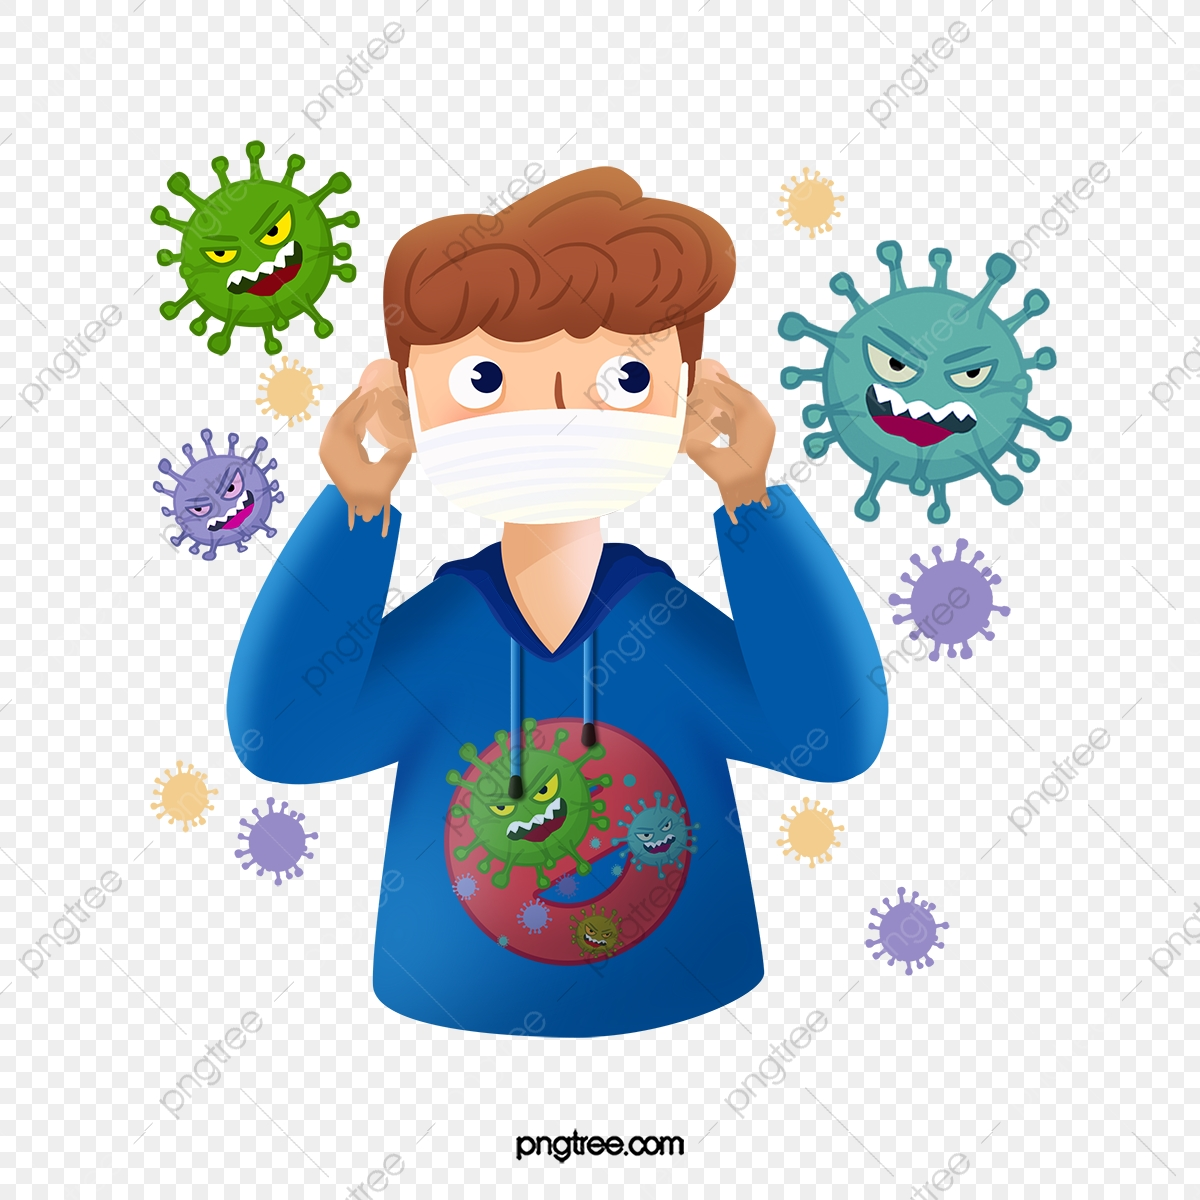 Covid 19 Virus Png File